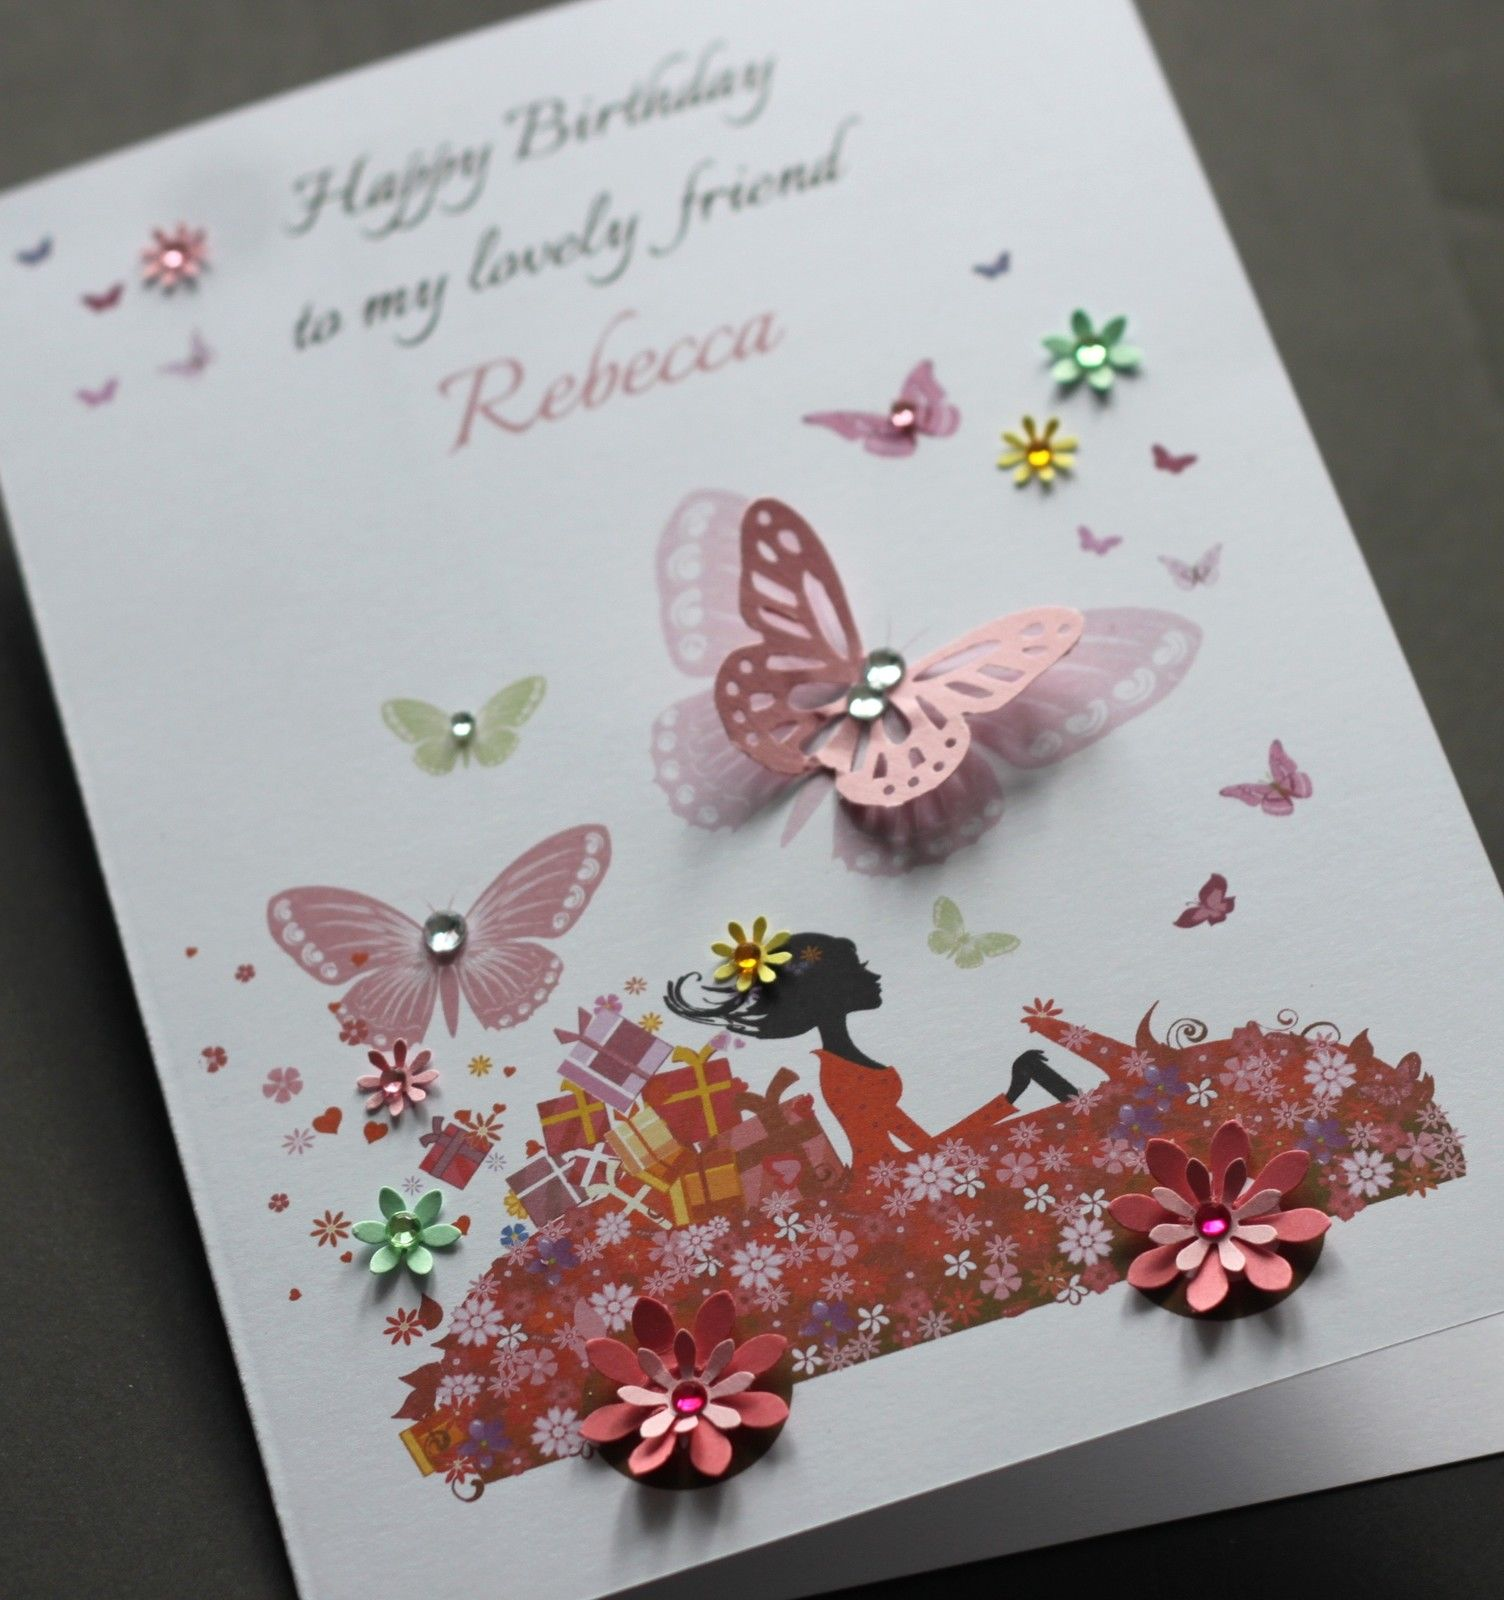 hand made birthday greeting cards ; A5-Handmade-Personalised-CUTE-CAR-Birthday-Card-sister-friend-daughter-mum_4